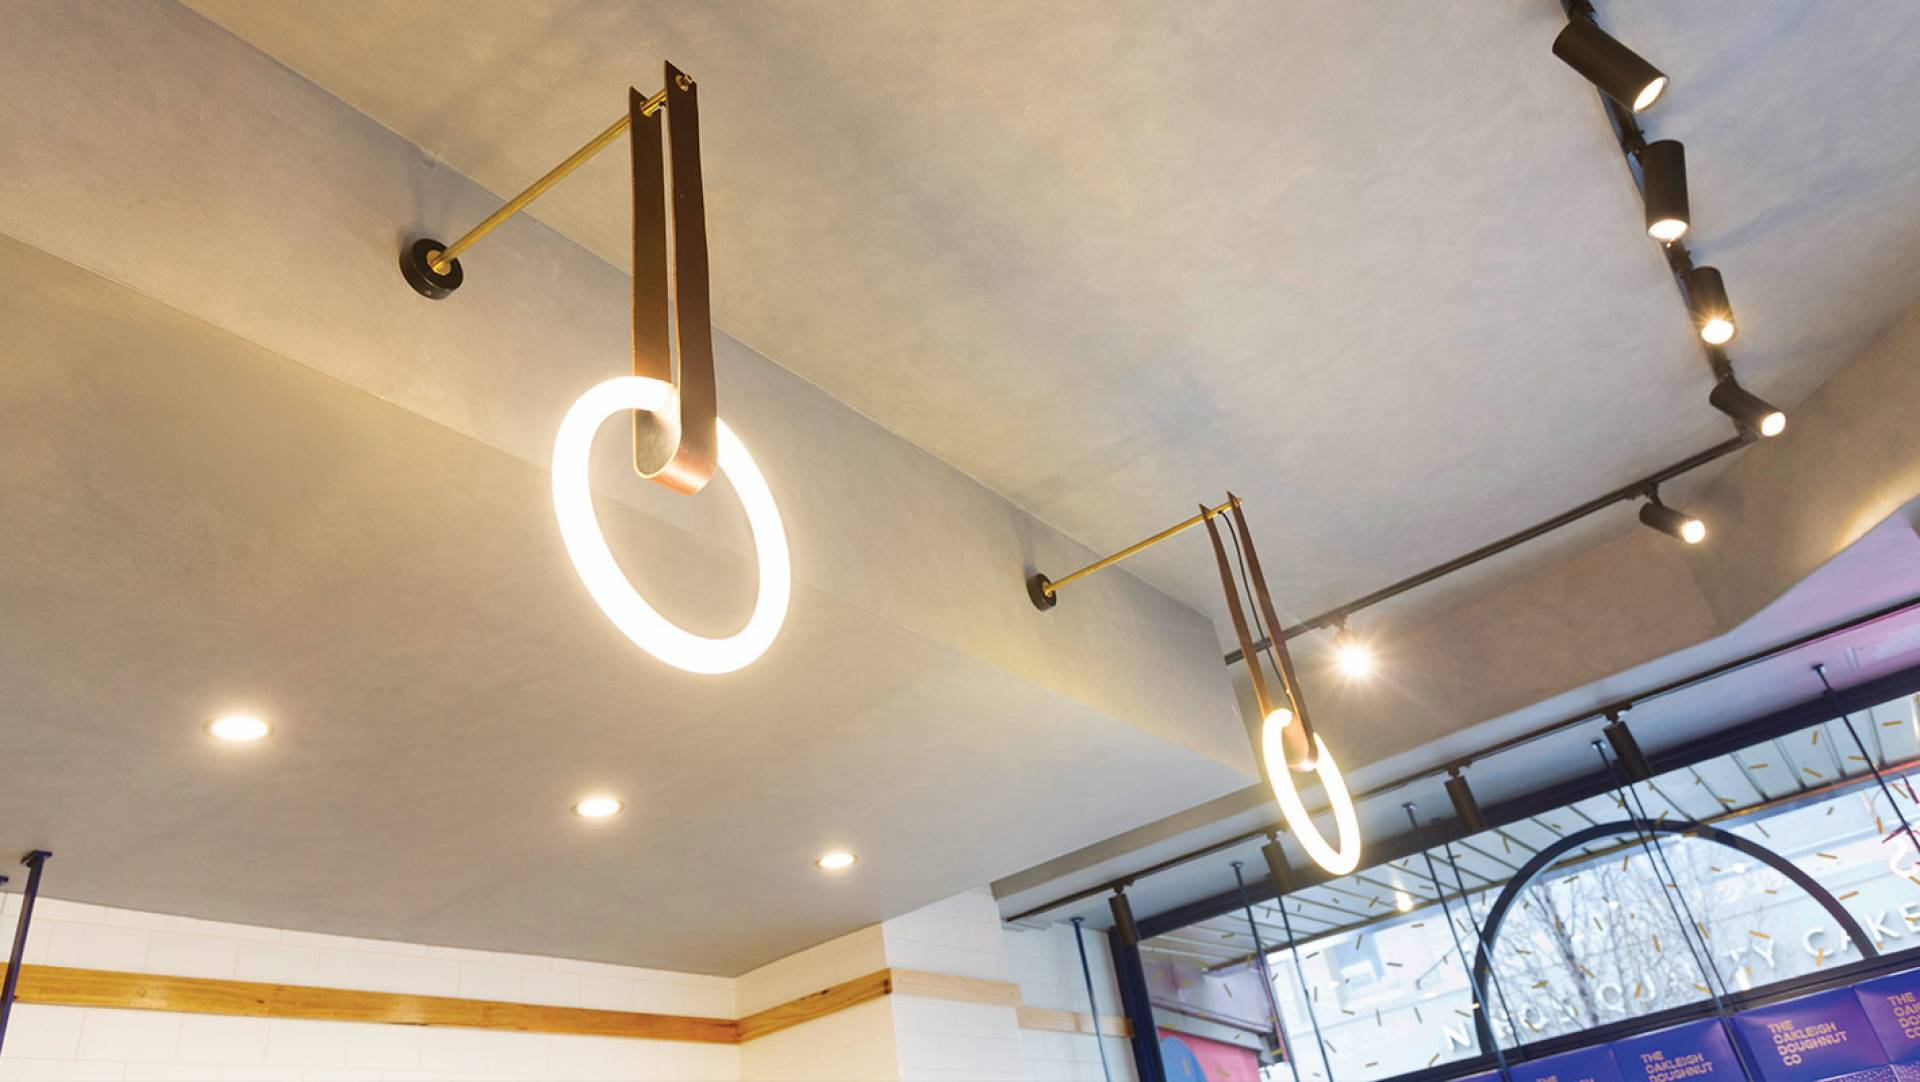 Doughnut & Cafe Design Melbourne-Oakleigh Doughnut Co TODCO Designer: Custom Lighting